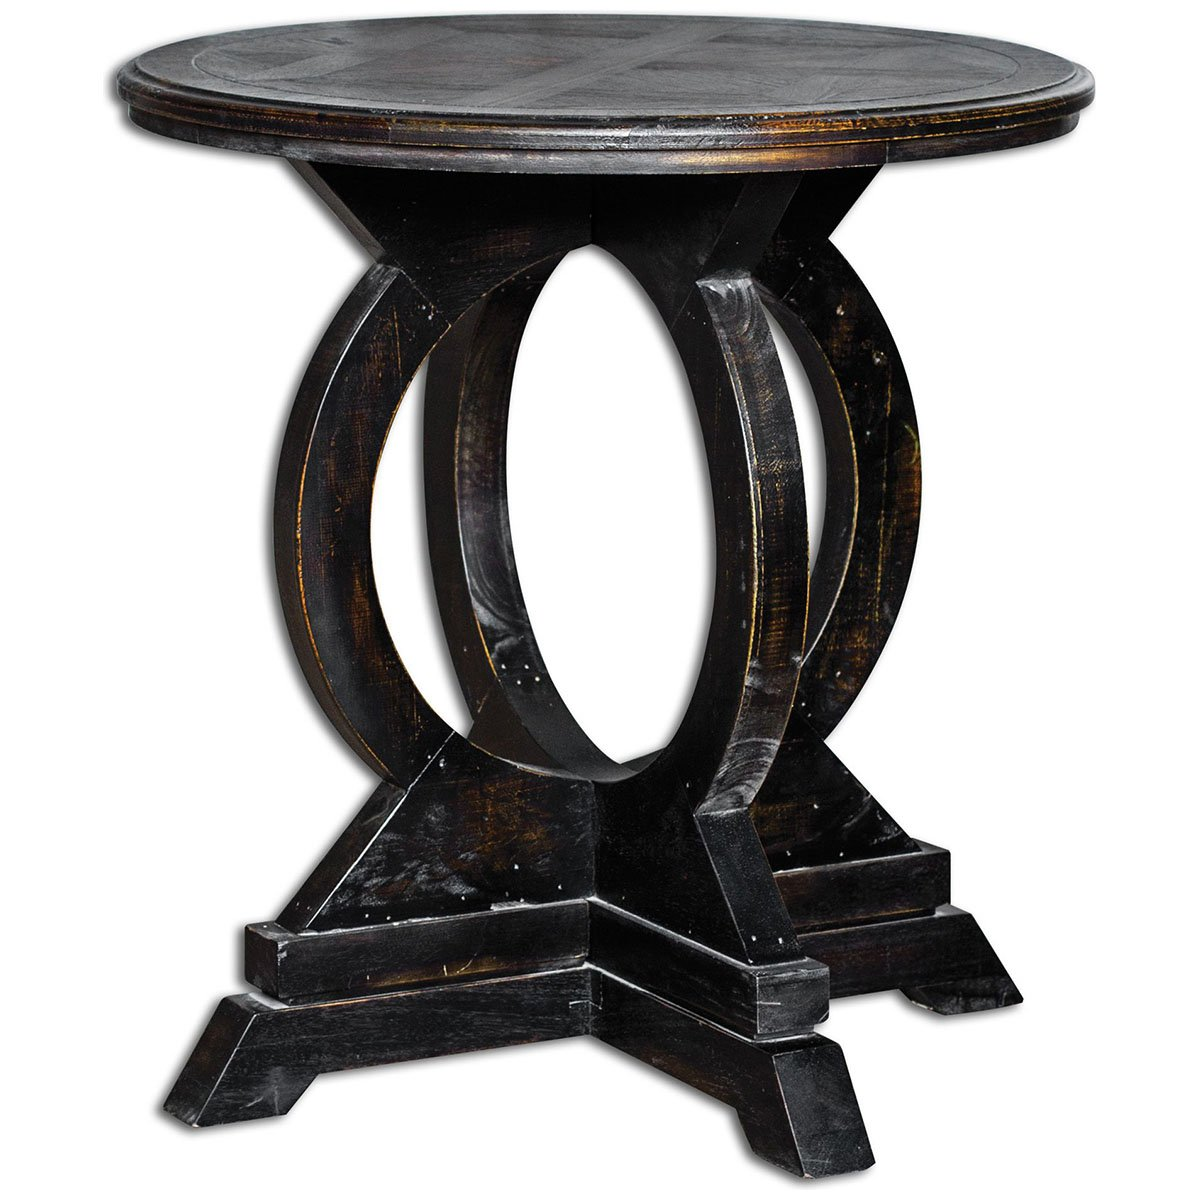 uttermost maiva accent table black kitchen dining round beverage cooler side orient lighting fall tablecloth mosaic outdoor furniture runner rugs laton mirrored tufted the brick